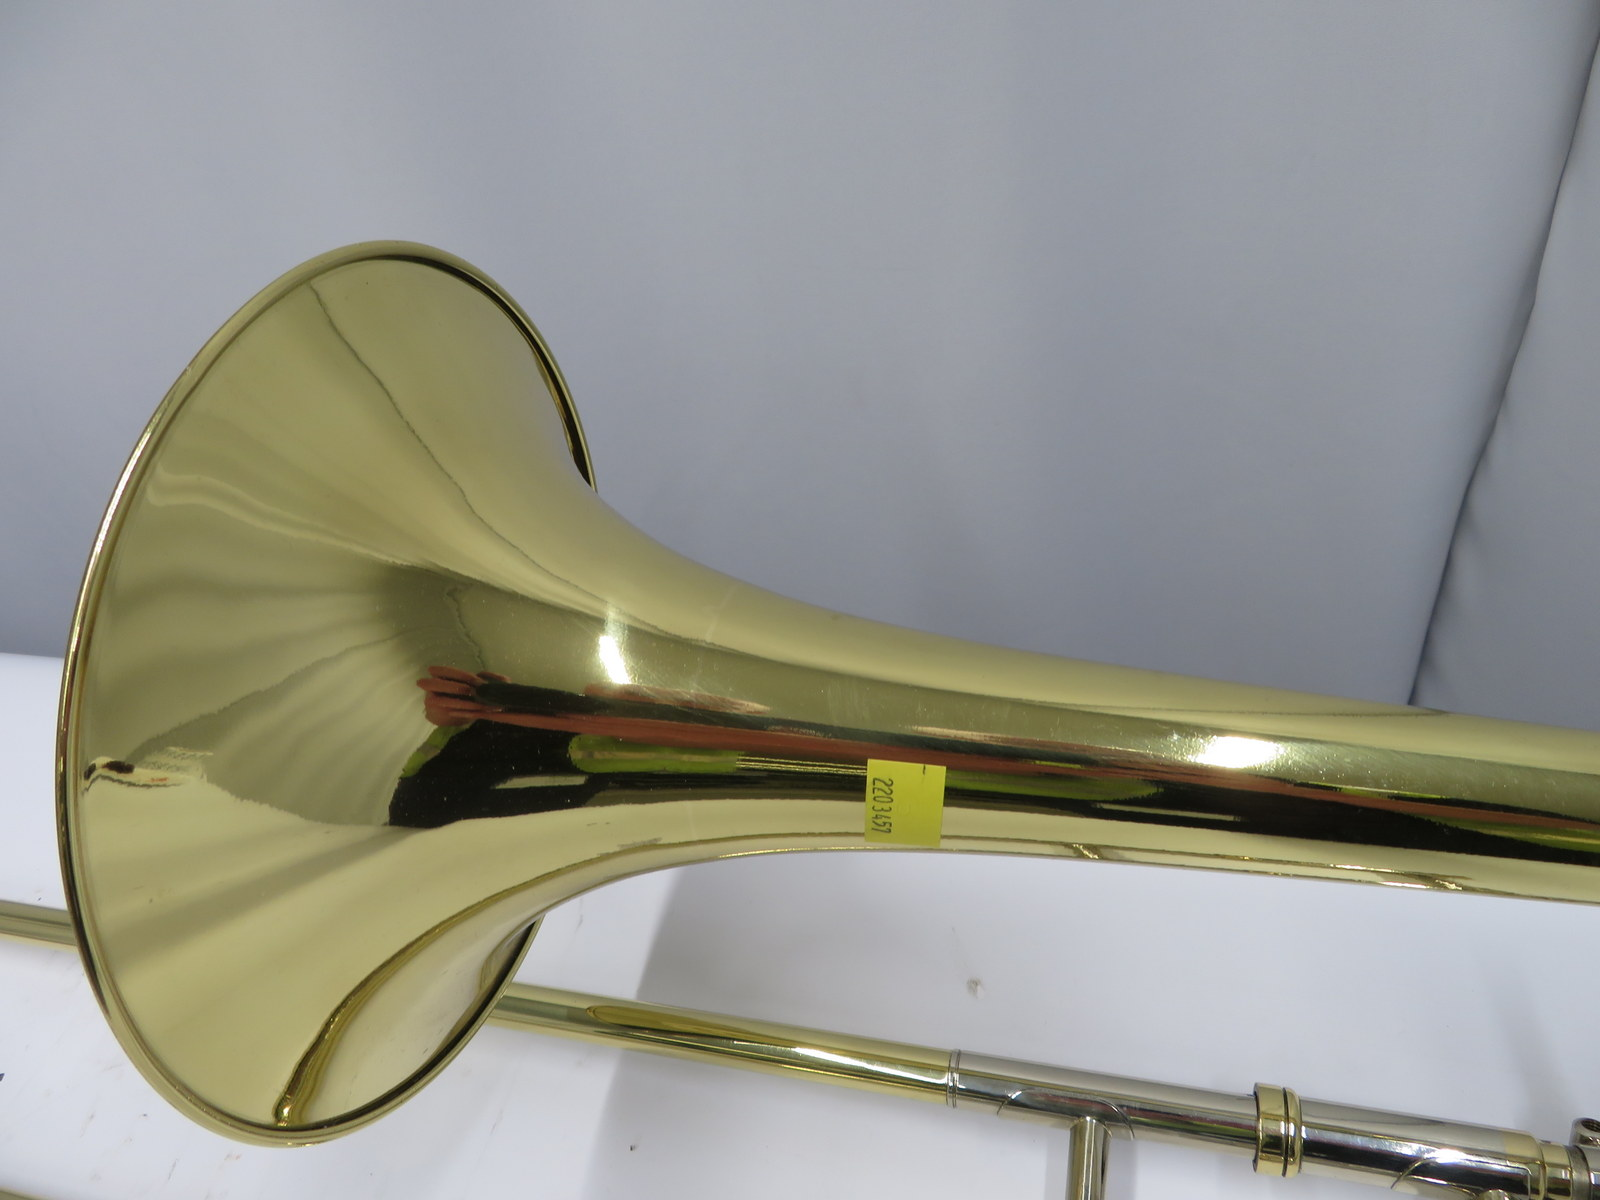 Lot 38 - Rath R4 trombone with case. Serial number: R4138.